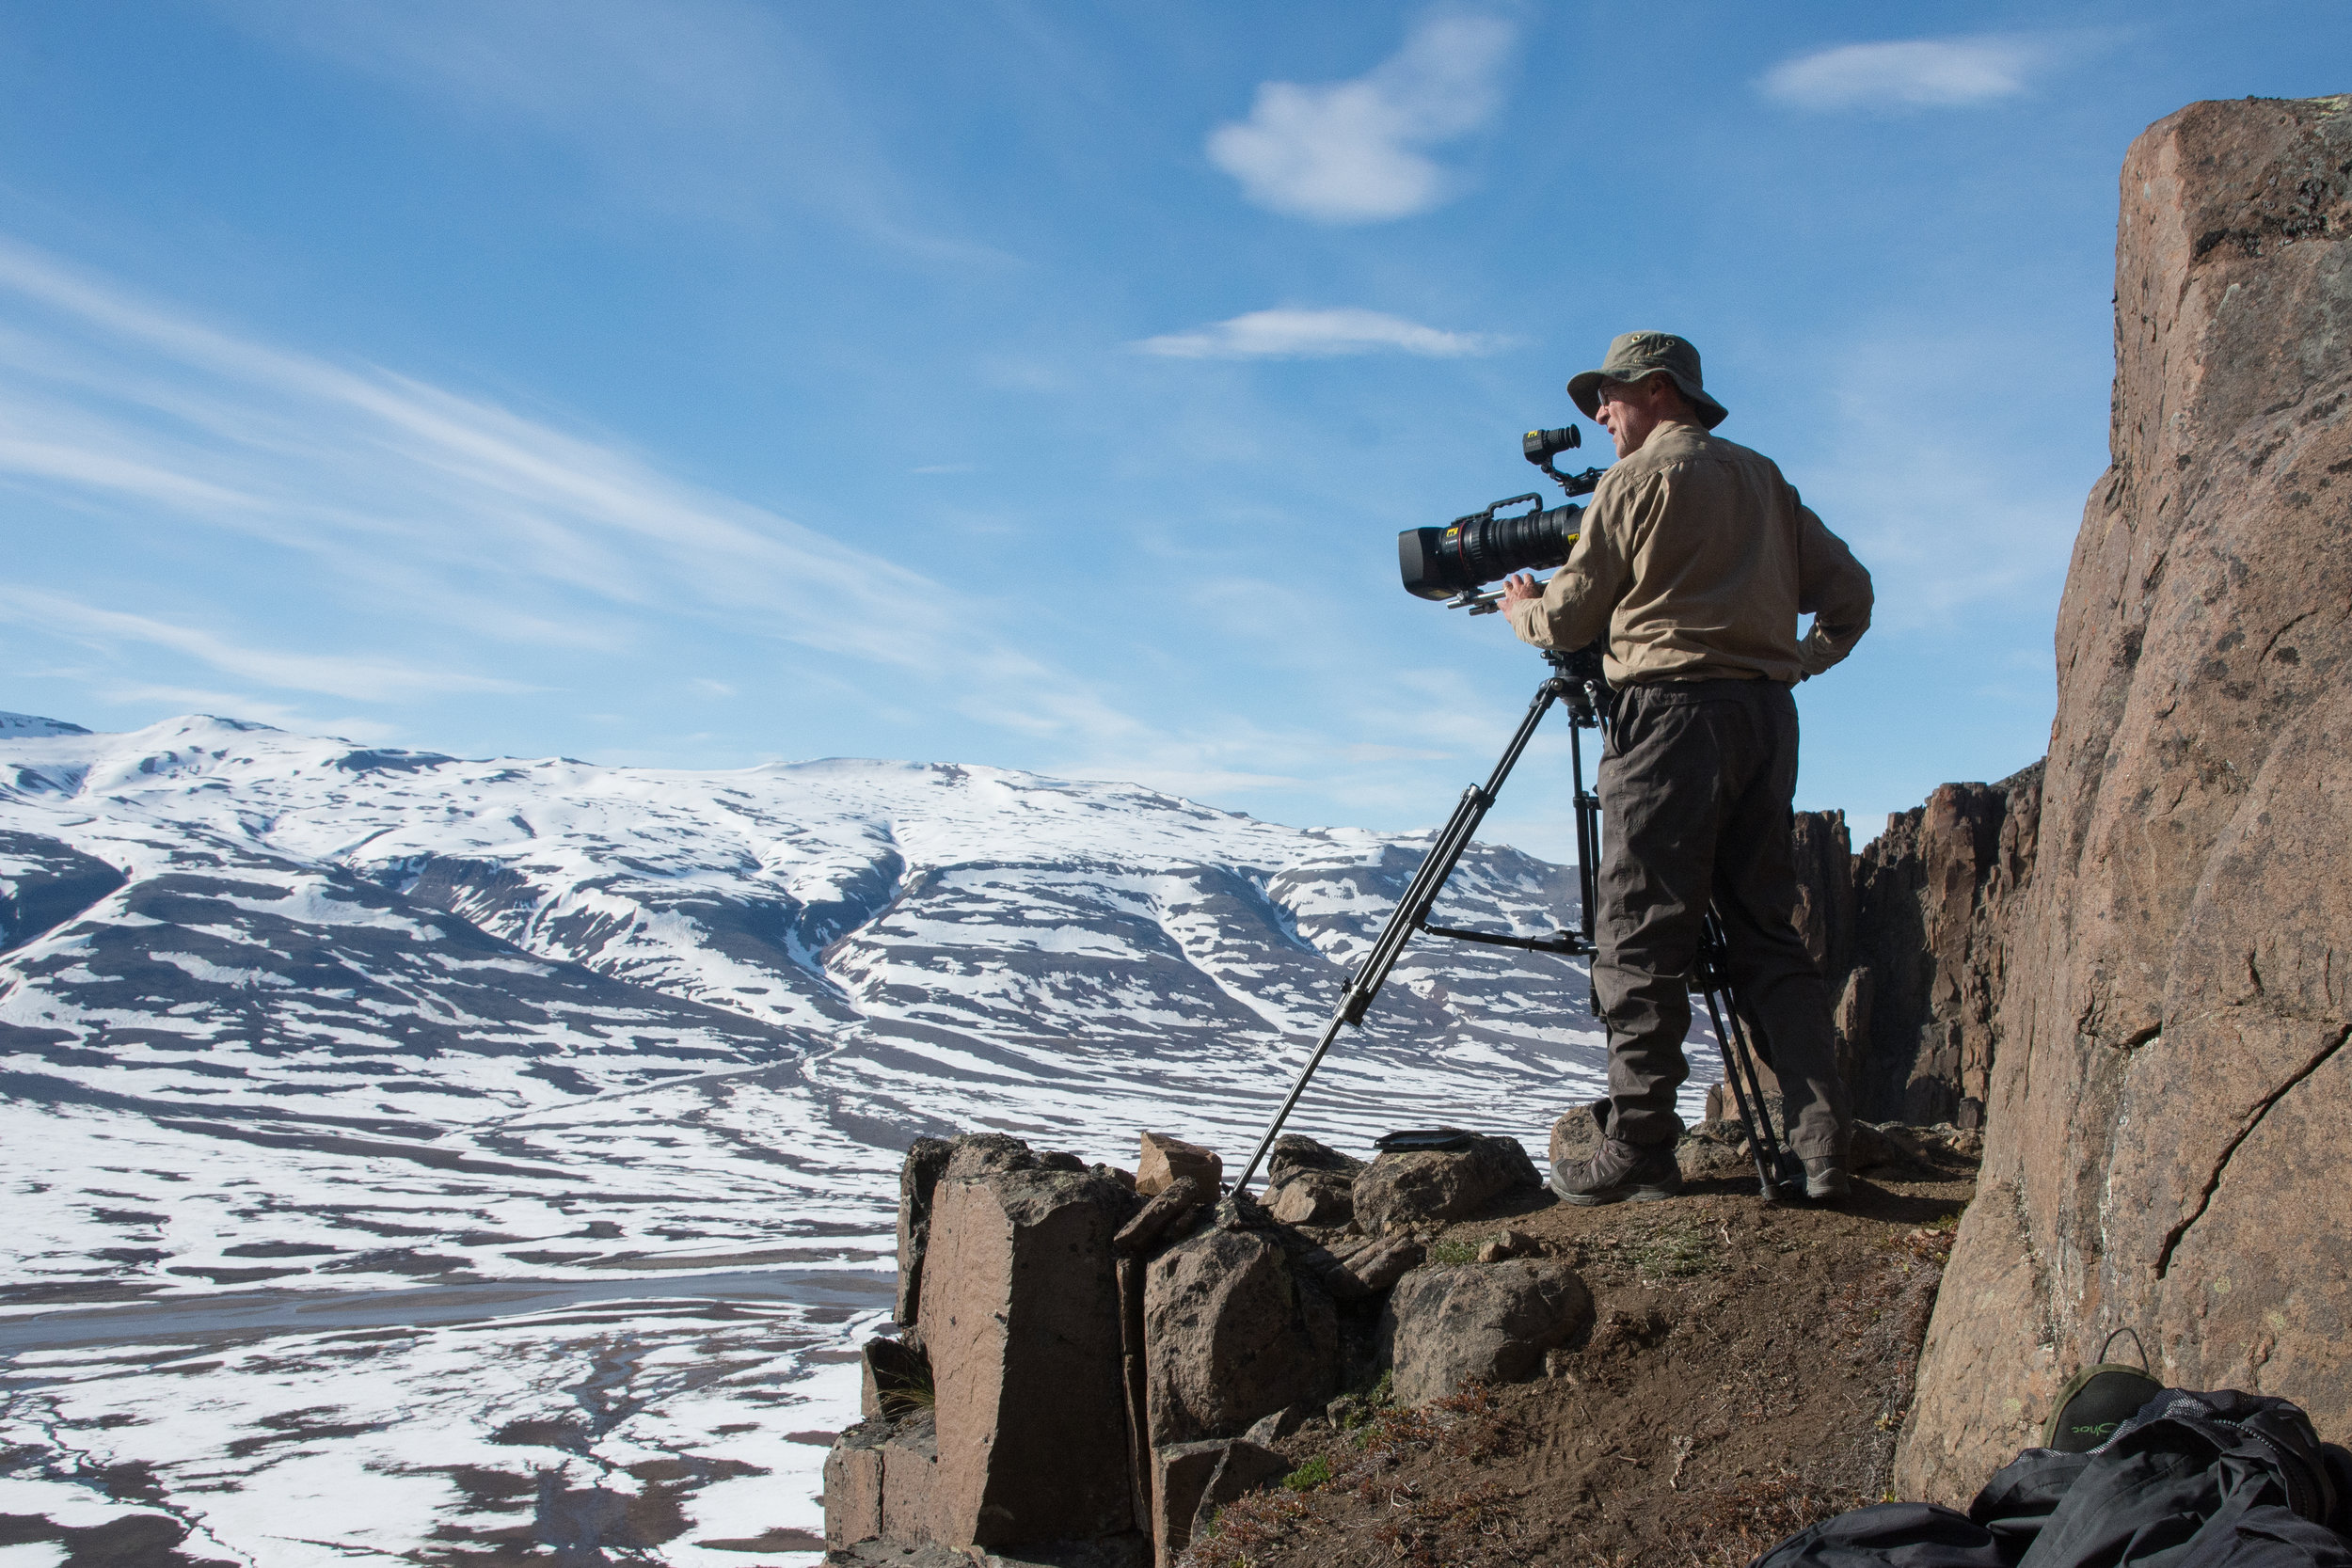 Greenland - Cameraman Barrie Britton prepares to film barnacle geese. The 400 foot basalt cliffs provided unstable filming platforms. Over thousands of years the freeze/thaw cycle has split the rocks. Many of them are balanced delicately on top of each other so the crew had to be extremely careful whenever they were working on, or under, the cliffs. On several occasions the crew witnessed avalanches. (National Geographic/Miguel Willis)